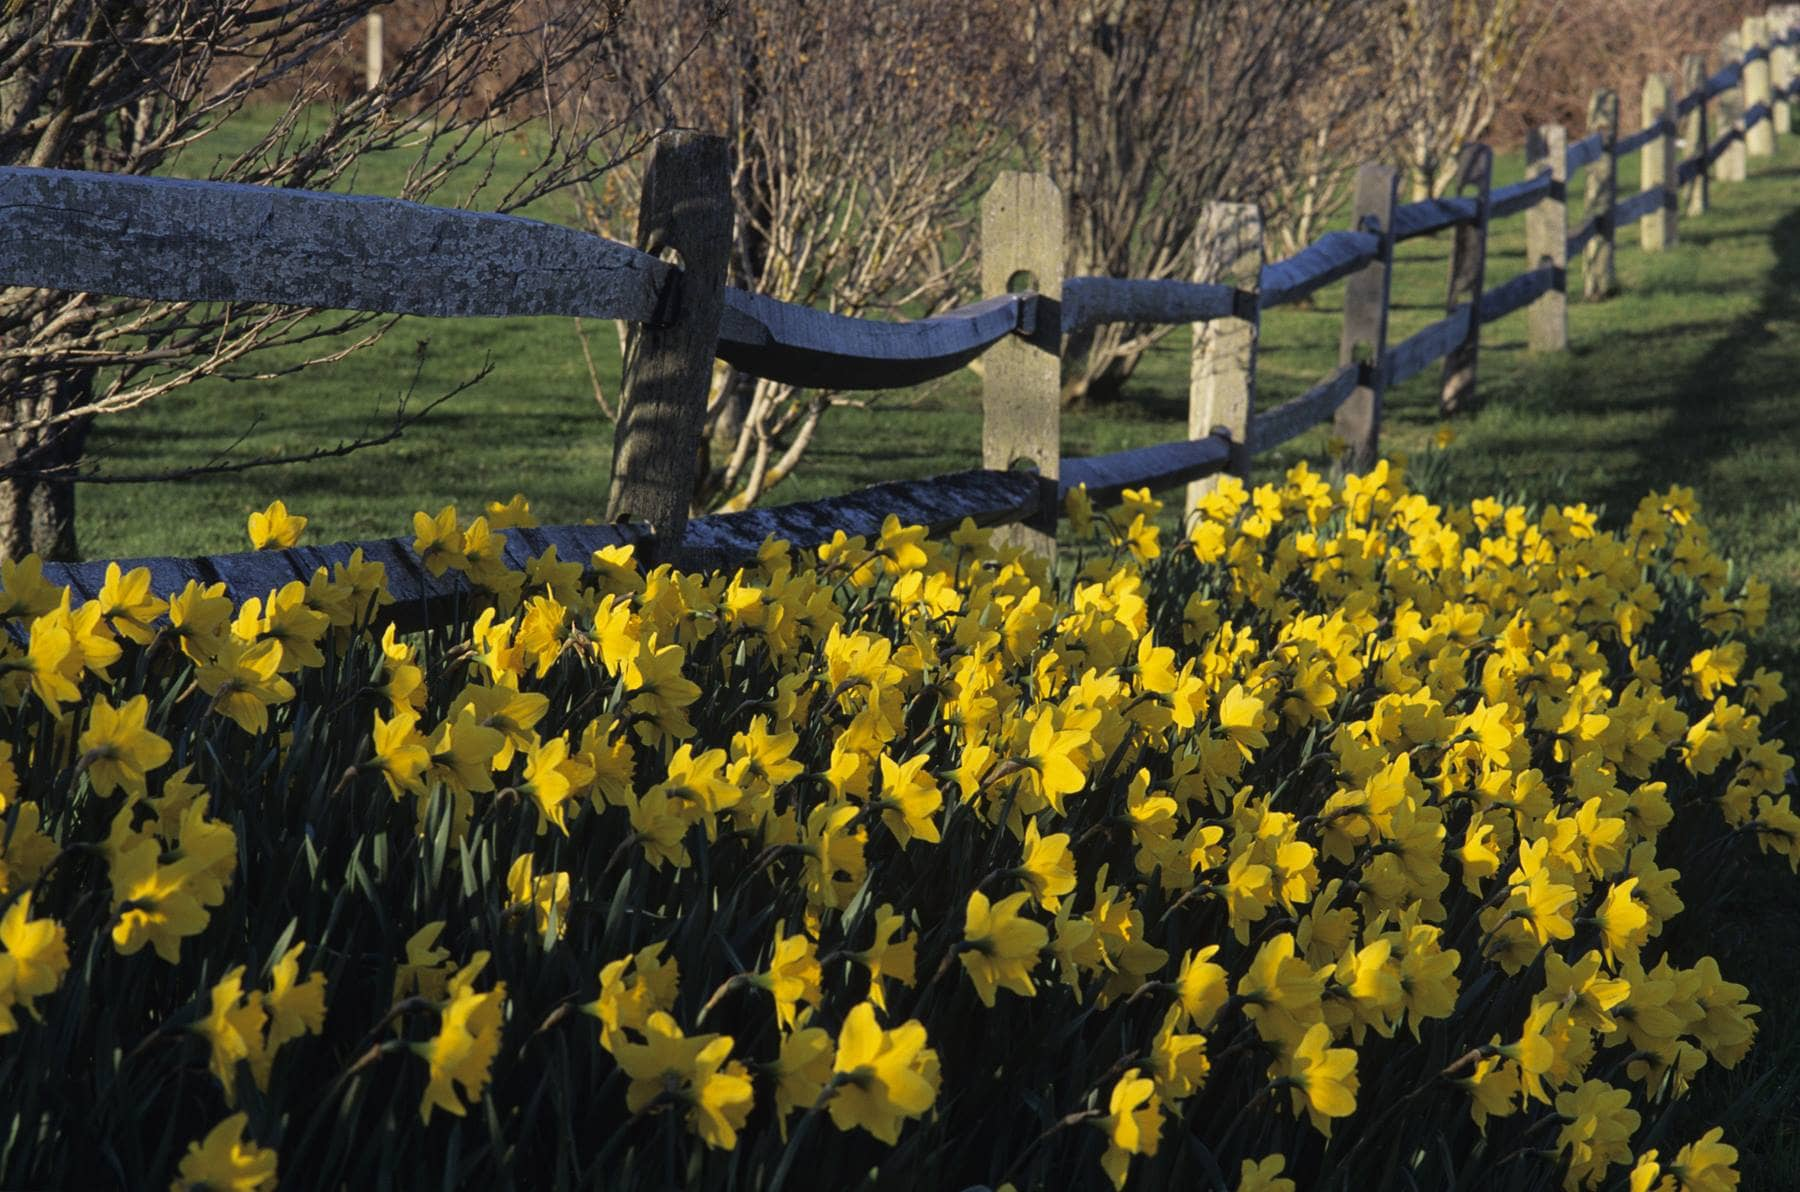 Daffodils and Fence